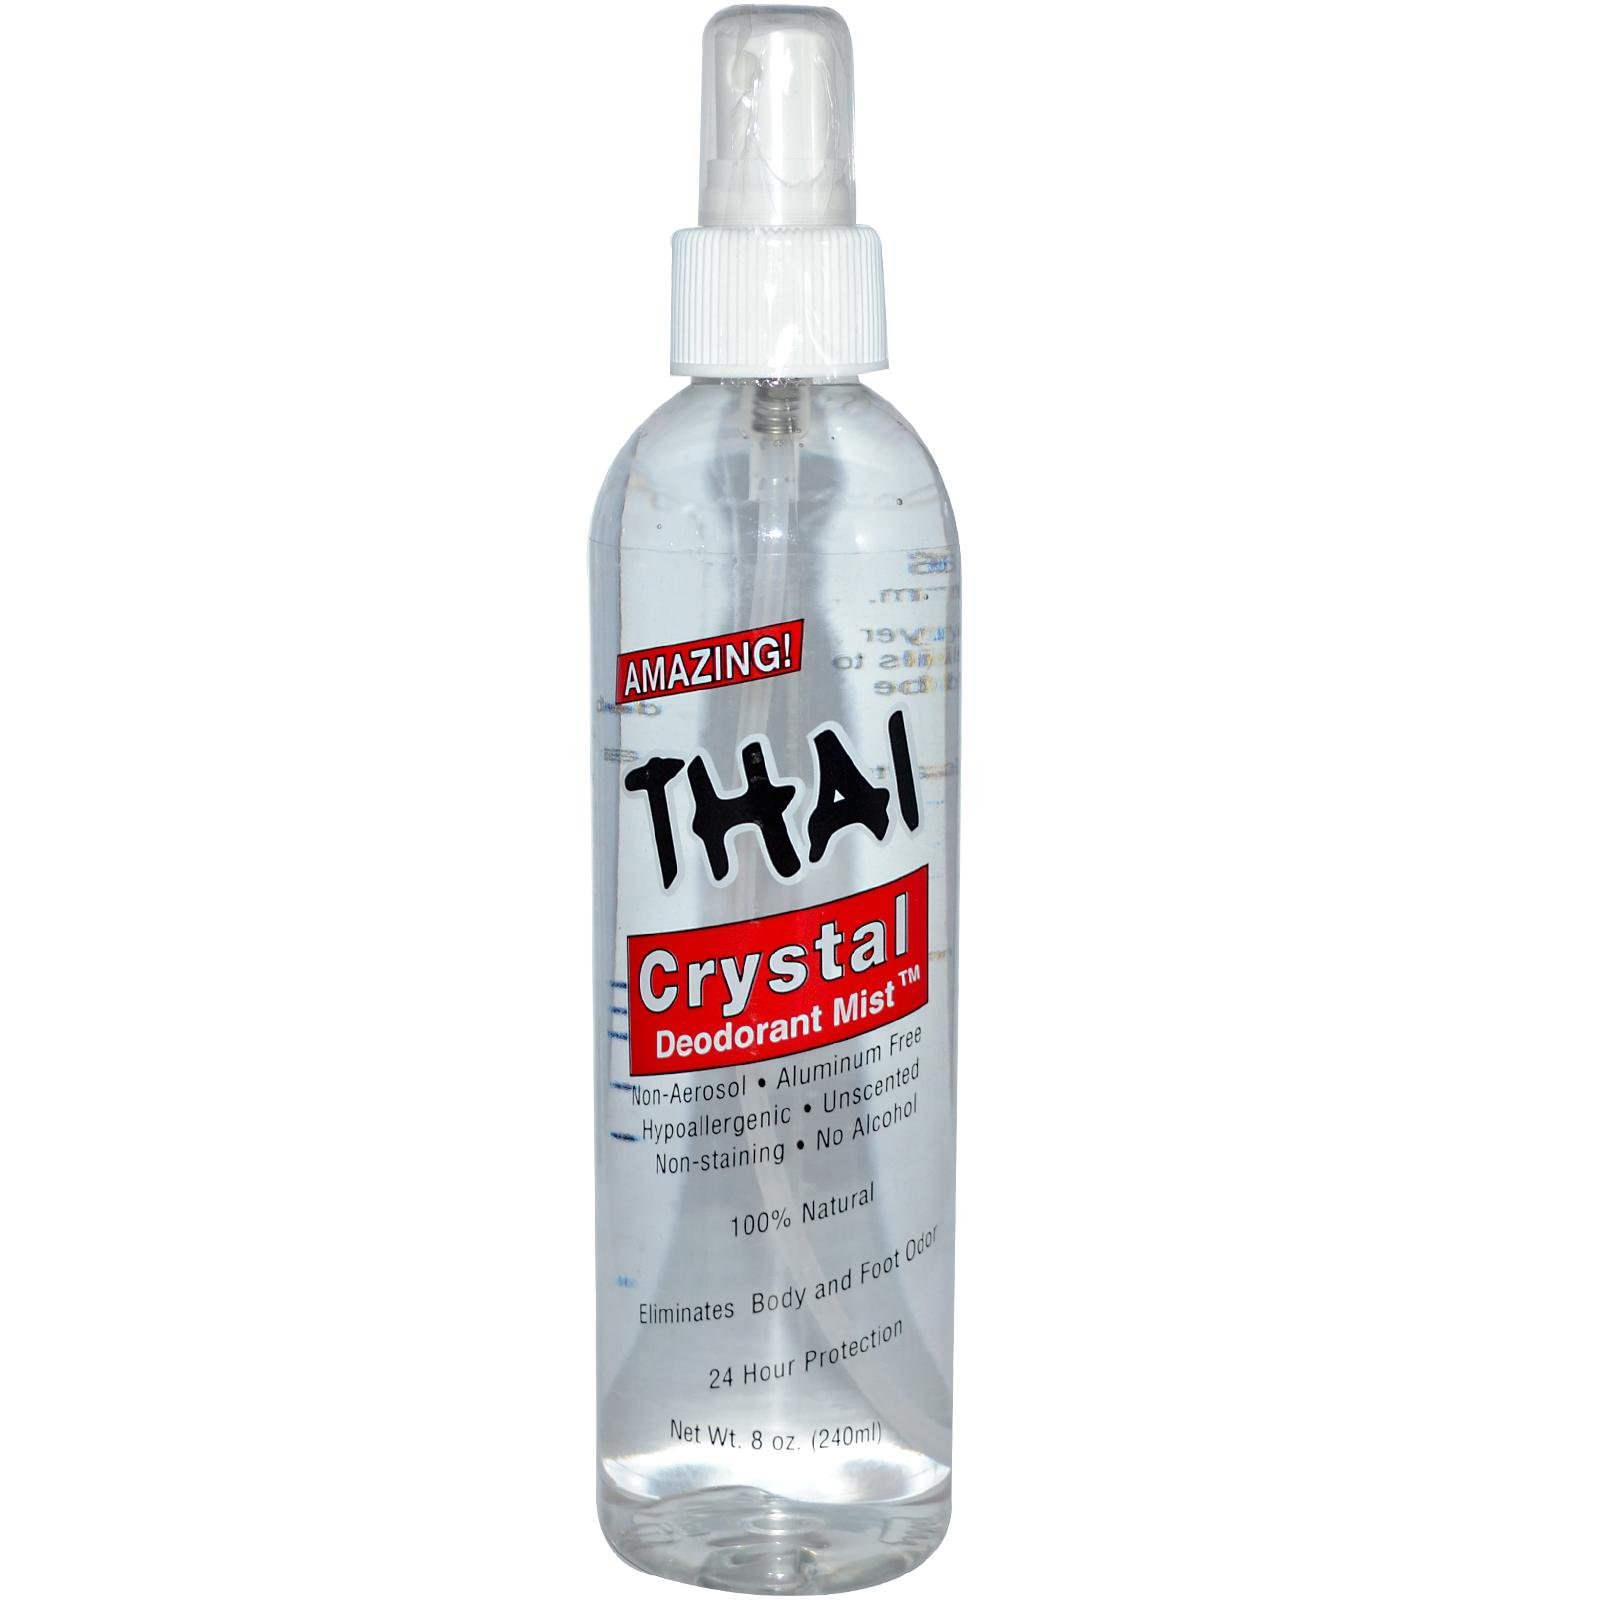 Thai Deodorant Stone Crystal Mist Natural Deodorant Spray 8 oz. Bundle, Pack of 2